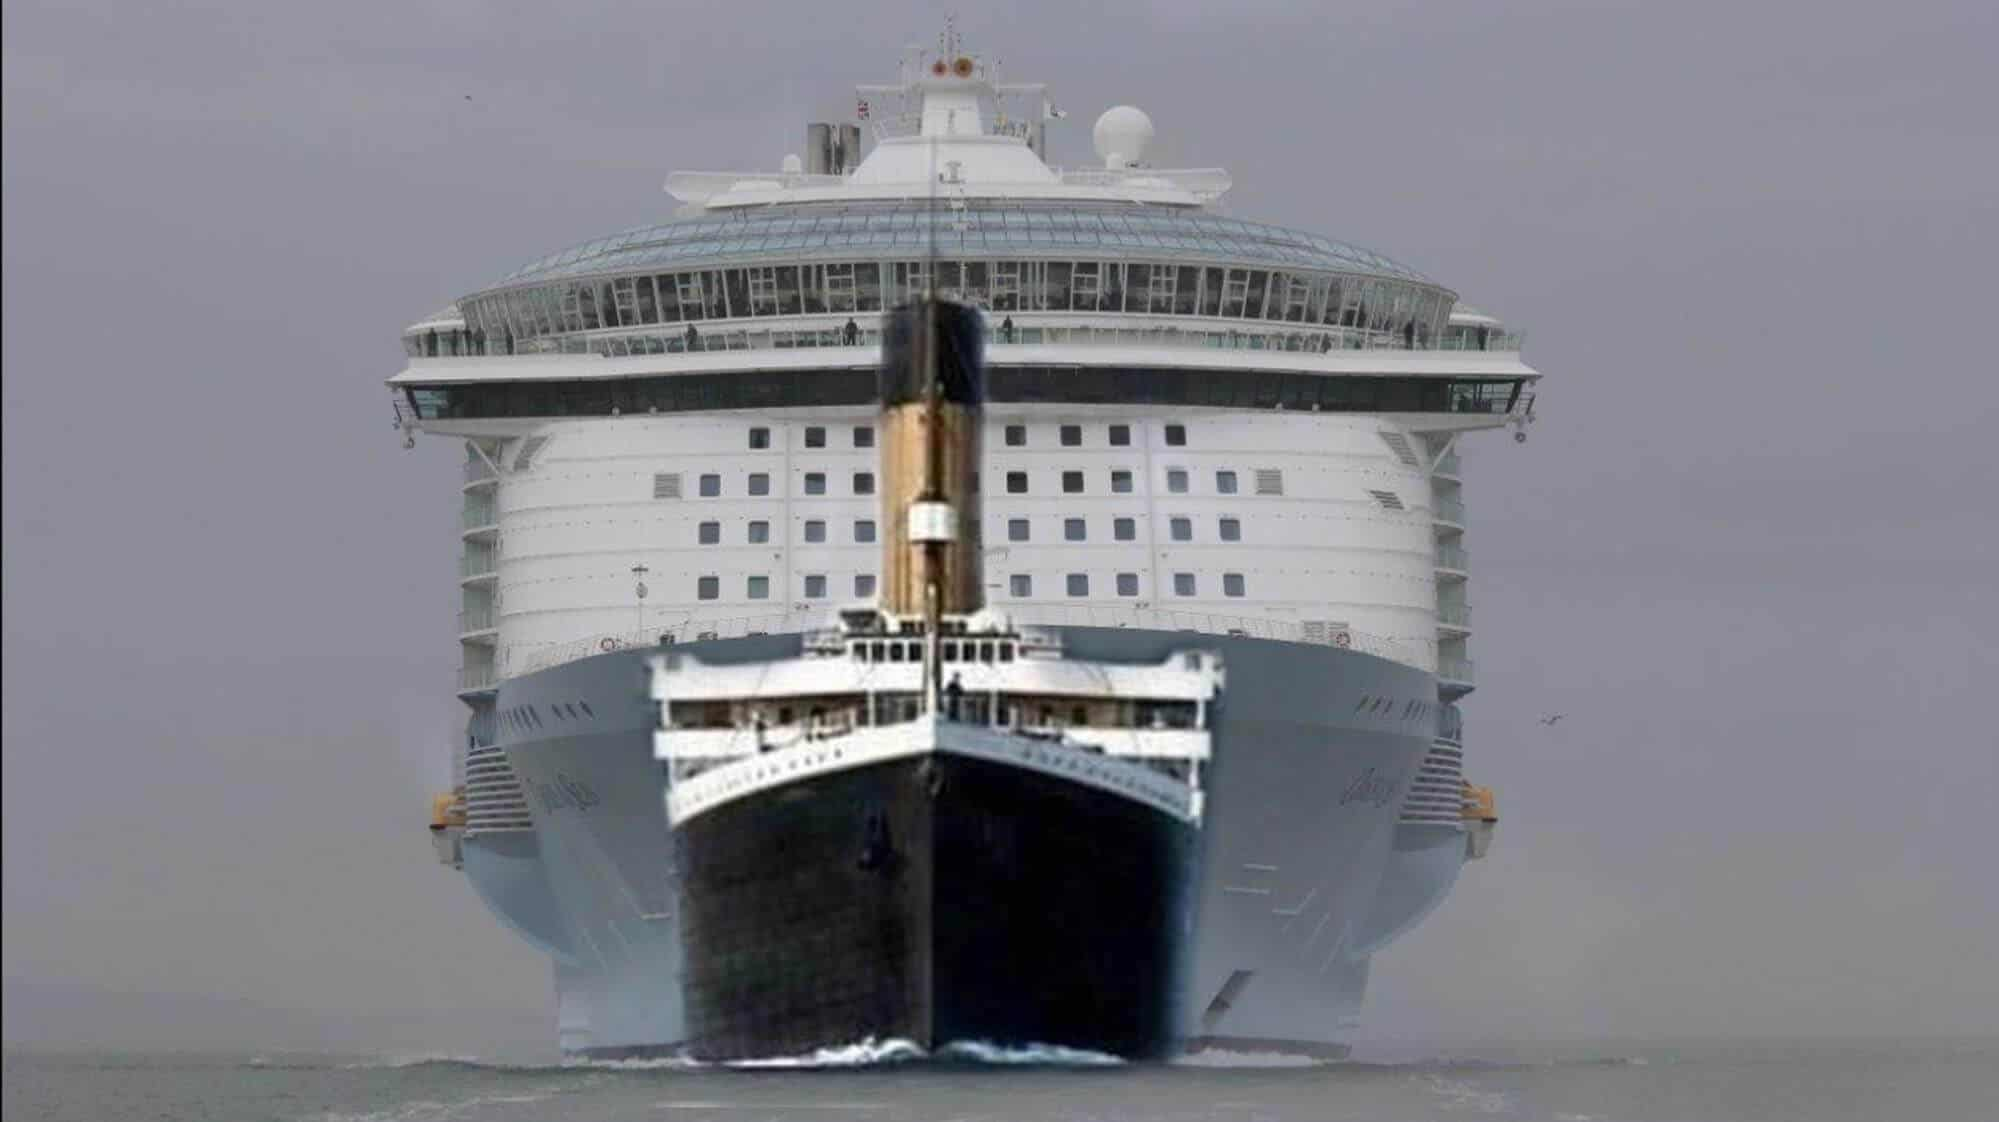 Picture of the titanic dwarfed by a larger cruise ship, the allure of the seas